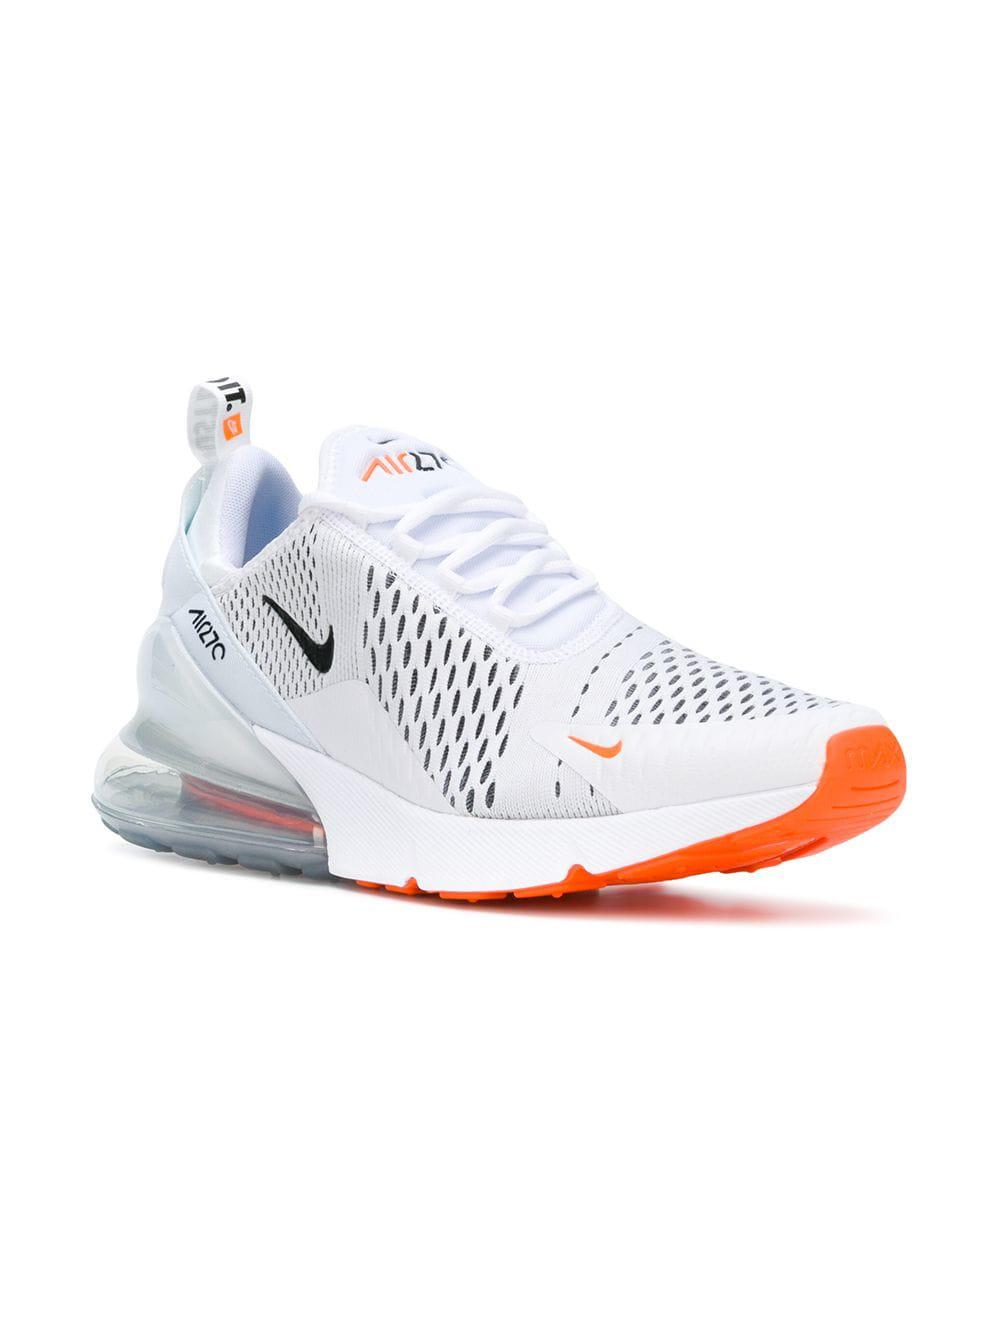 new product d72b6 9ad32 Nike - White Air Max 270 Sneakers for Men - Lyst. View fullscreen